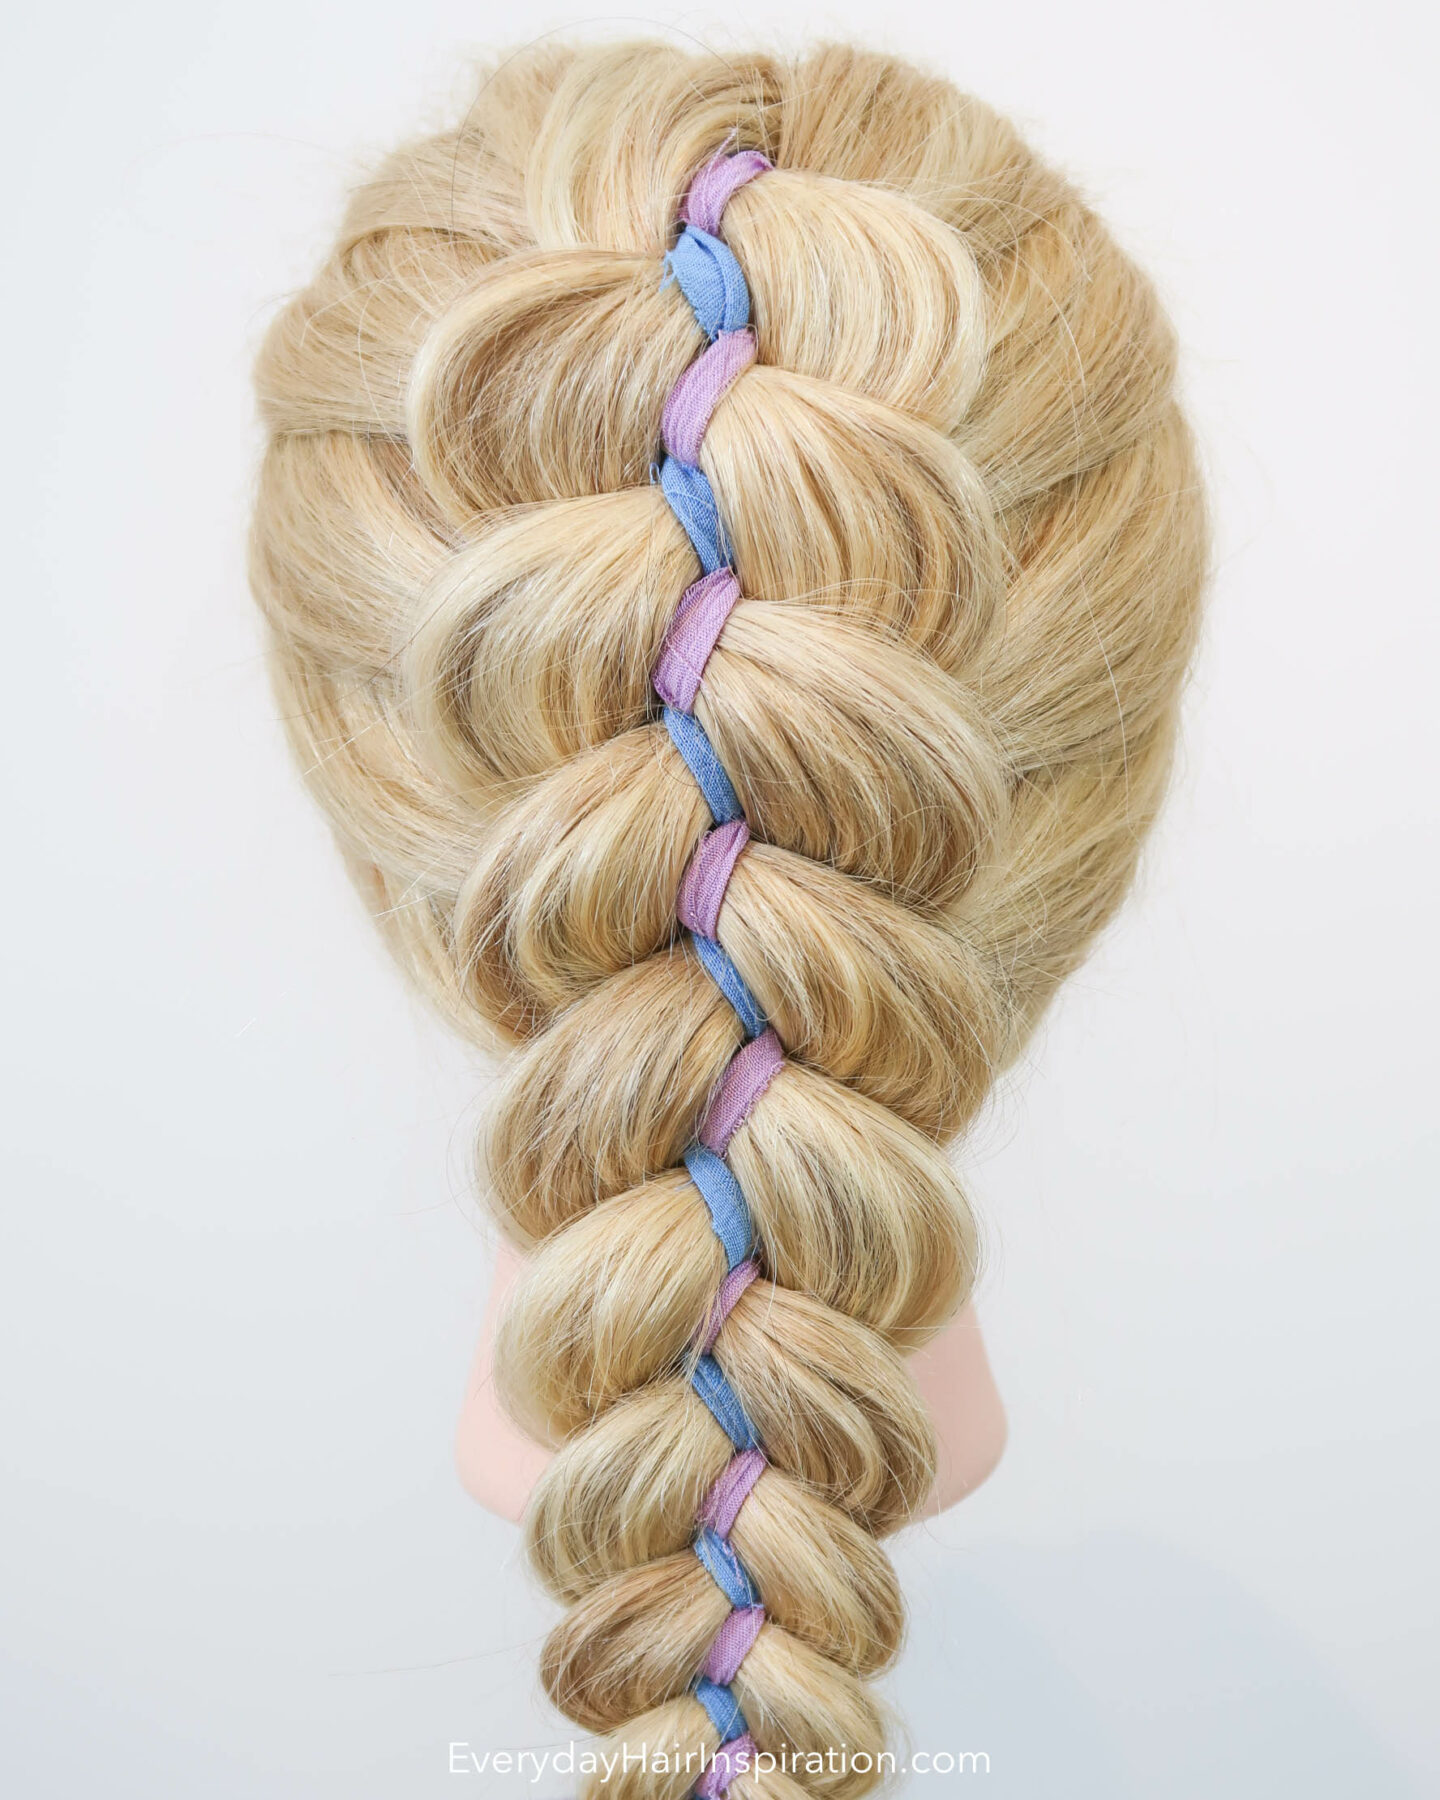 Blonde hairdresser doll, seen from the back with a dutch ribbon braid in the hair. The ribbon is blue and purple and is zig zagging down the middle of the braid.